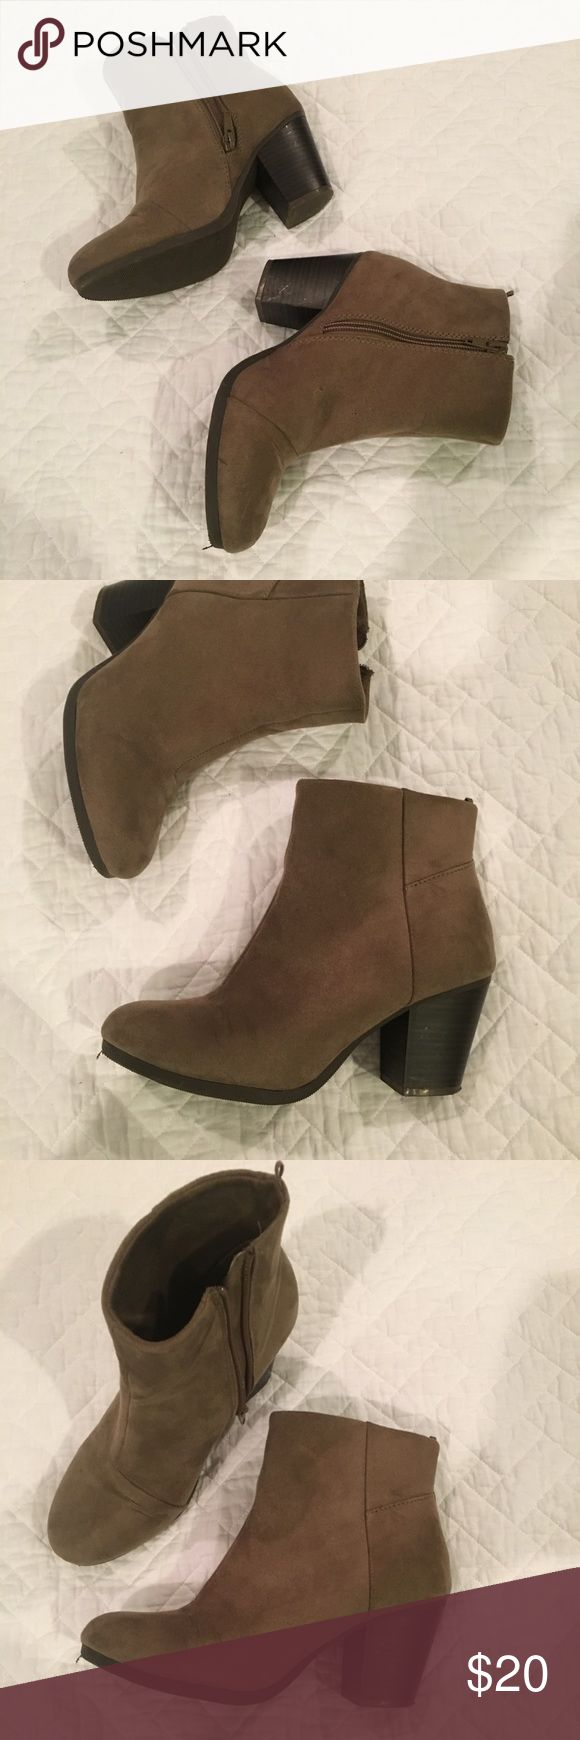 Old Navy Booties Army green/brownish booties, great condition, worn a few times Old Navy Shoes Heeled Boots